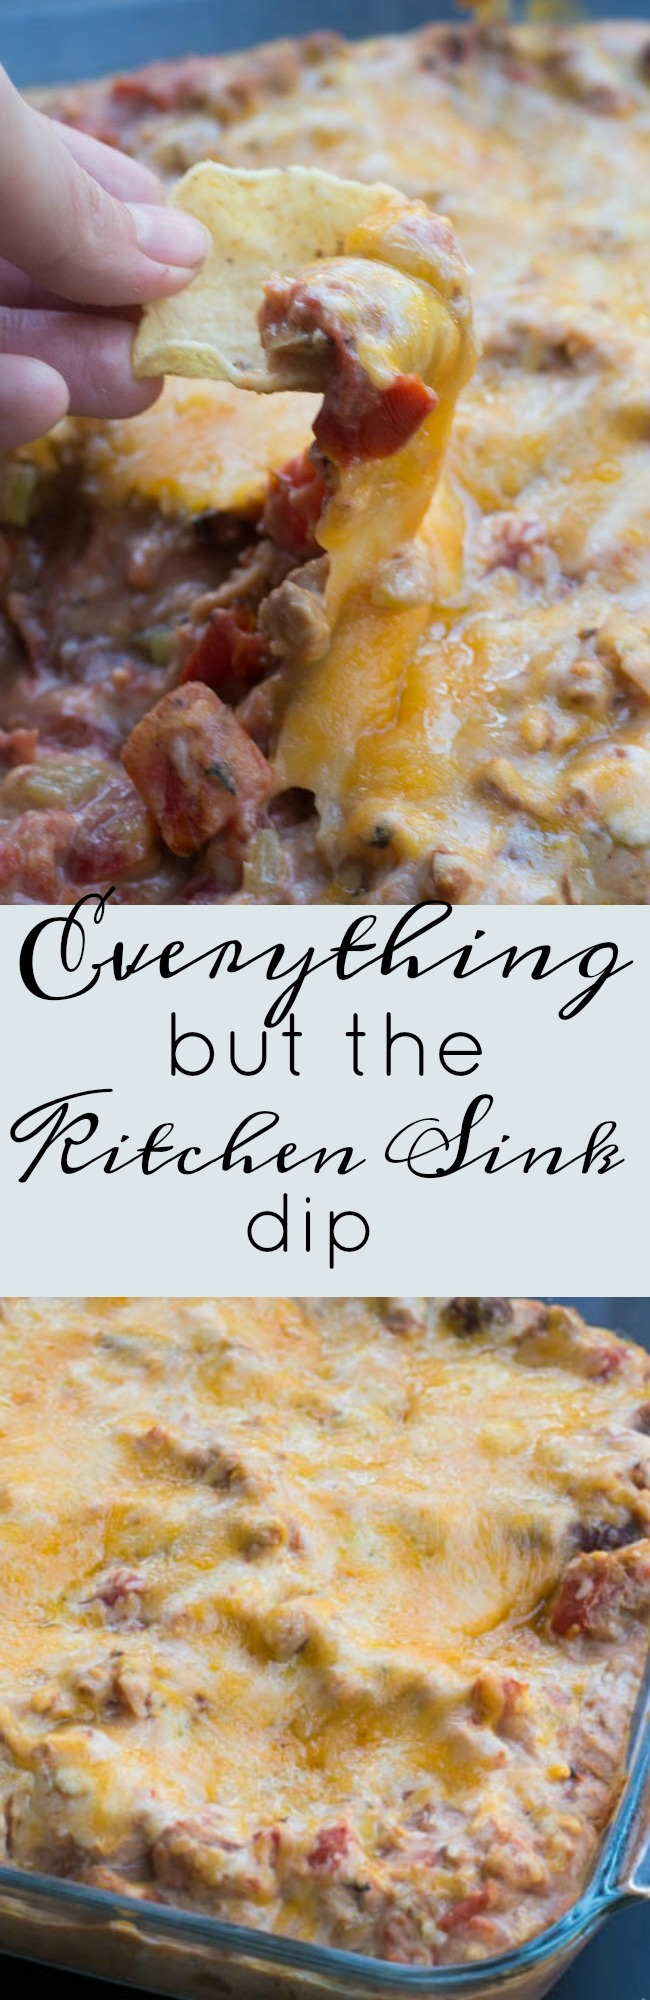 This is a cheesy bean dip recipe that is a delicious appetizer for parties and get togethers! via @clarkscondensed